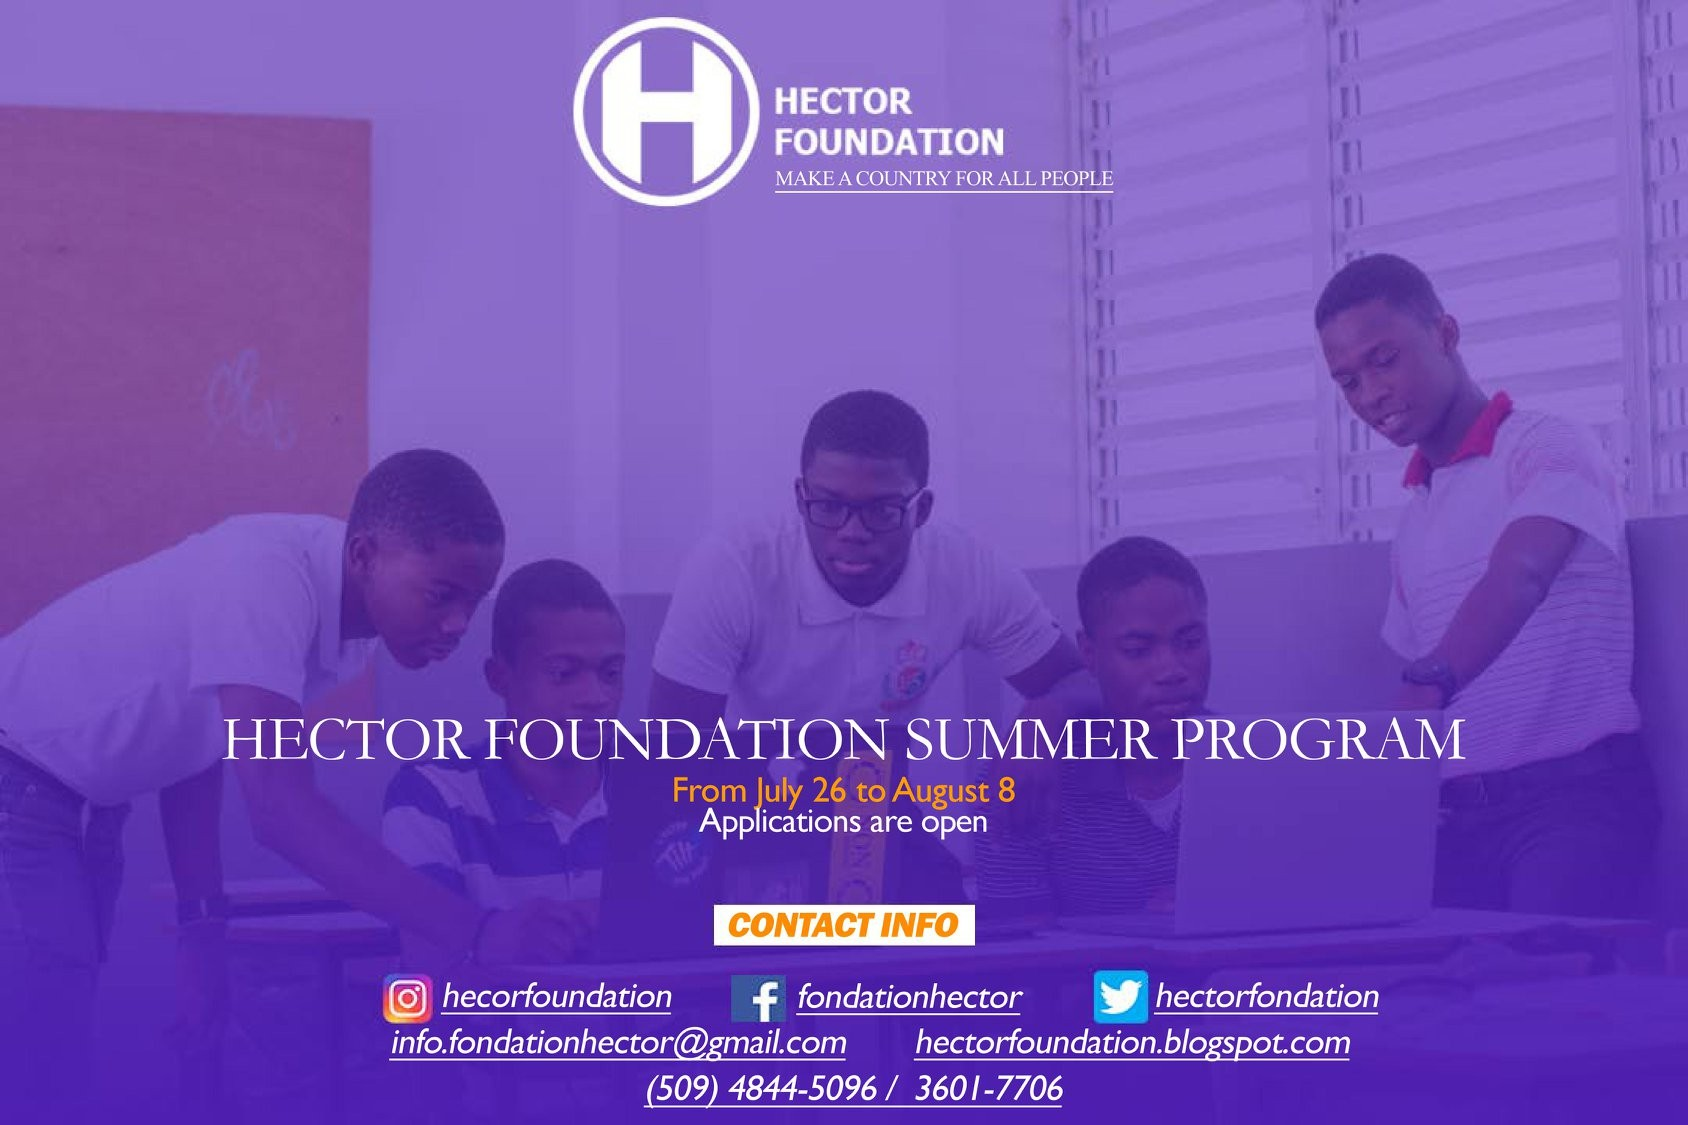 Hector Foundation applications